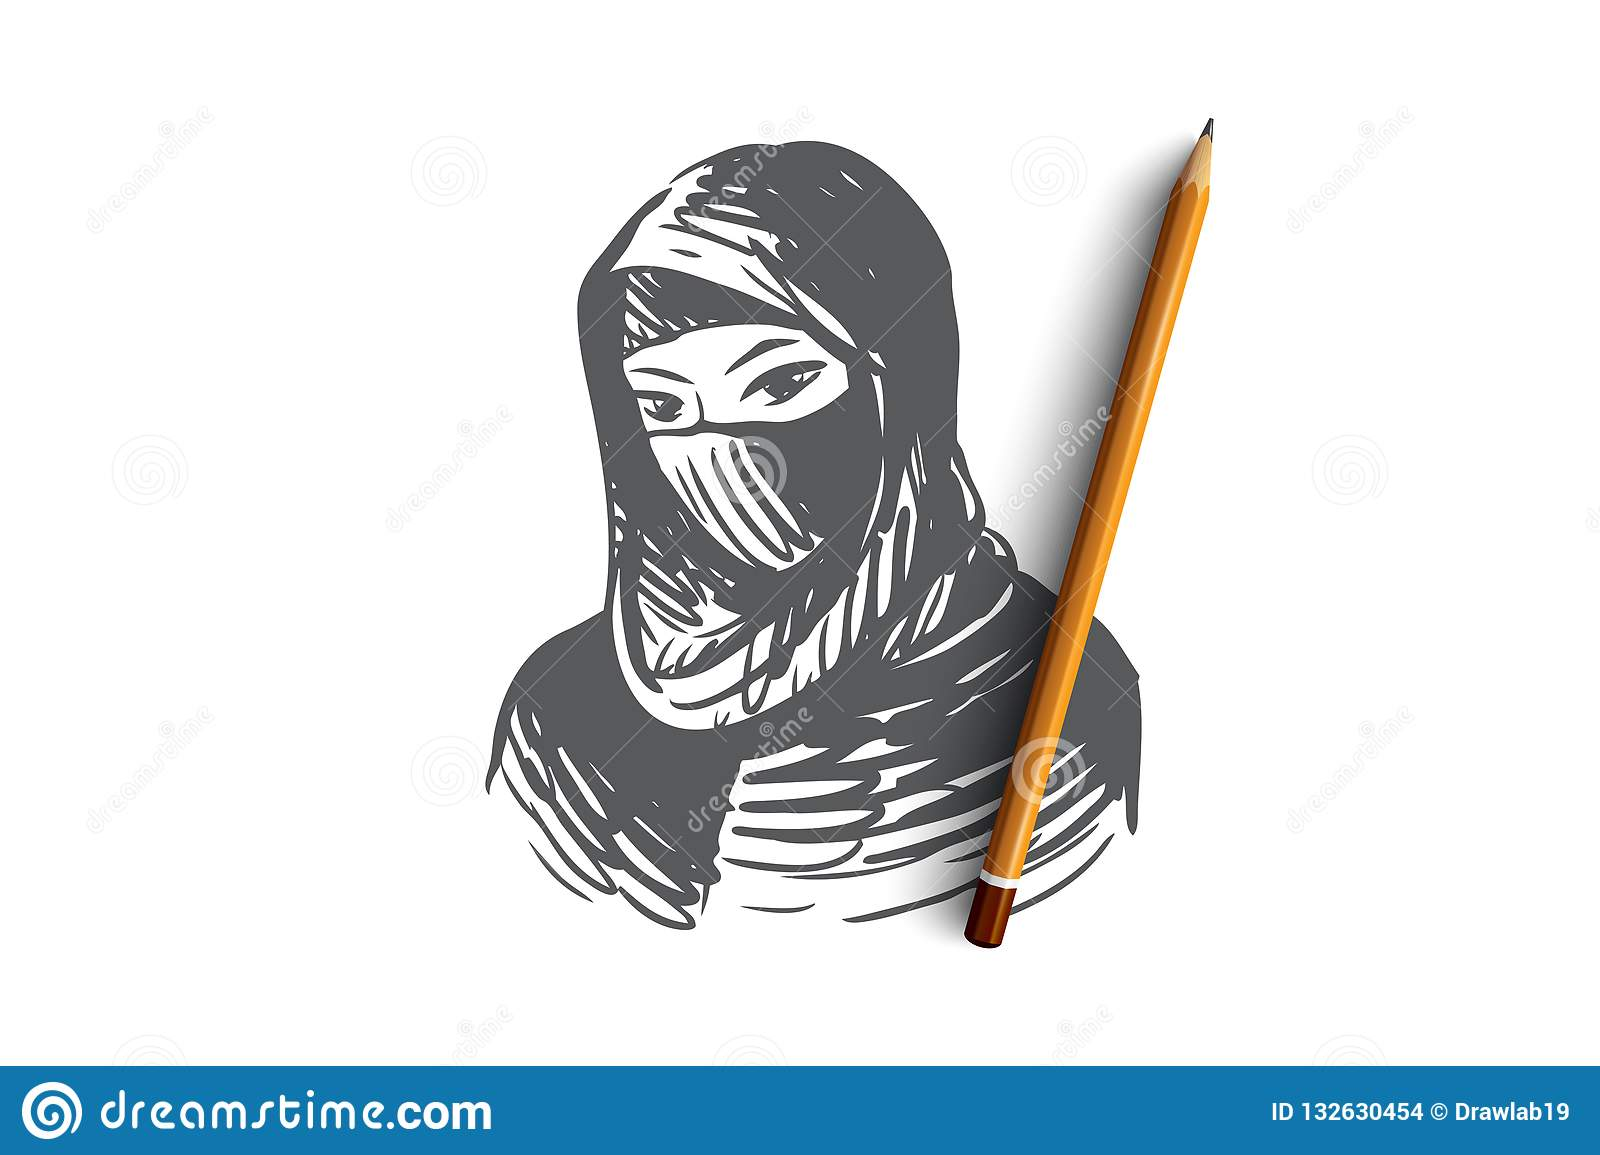 Woman hijab girl islam young concept hand drawn isolated vector